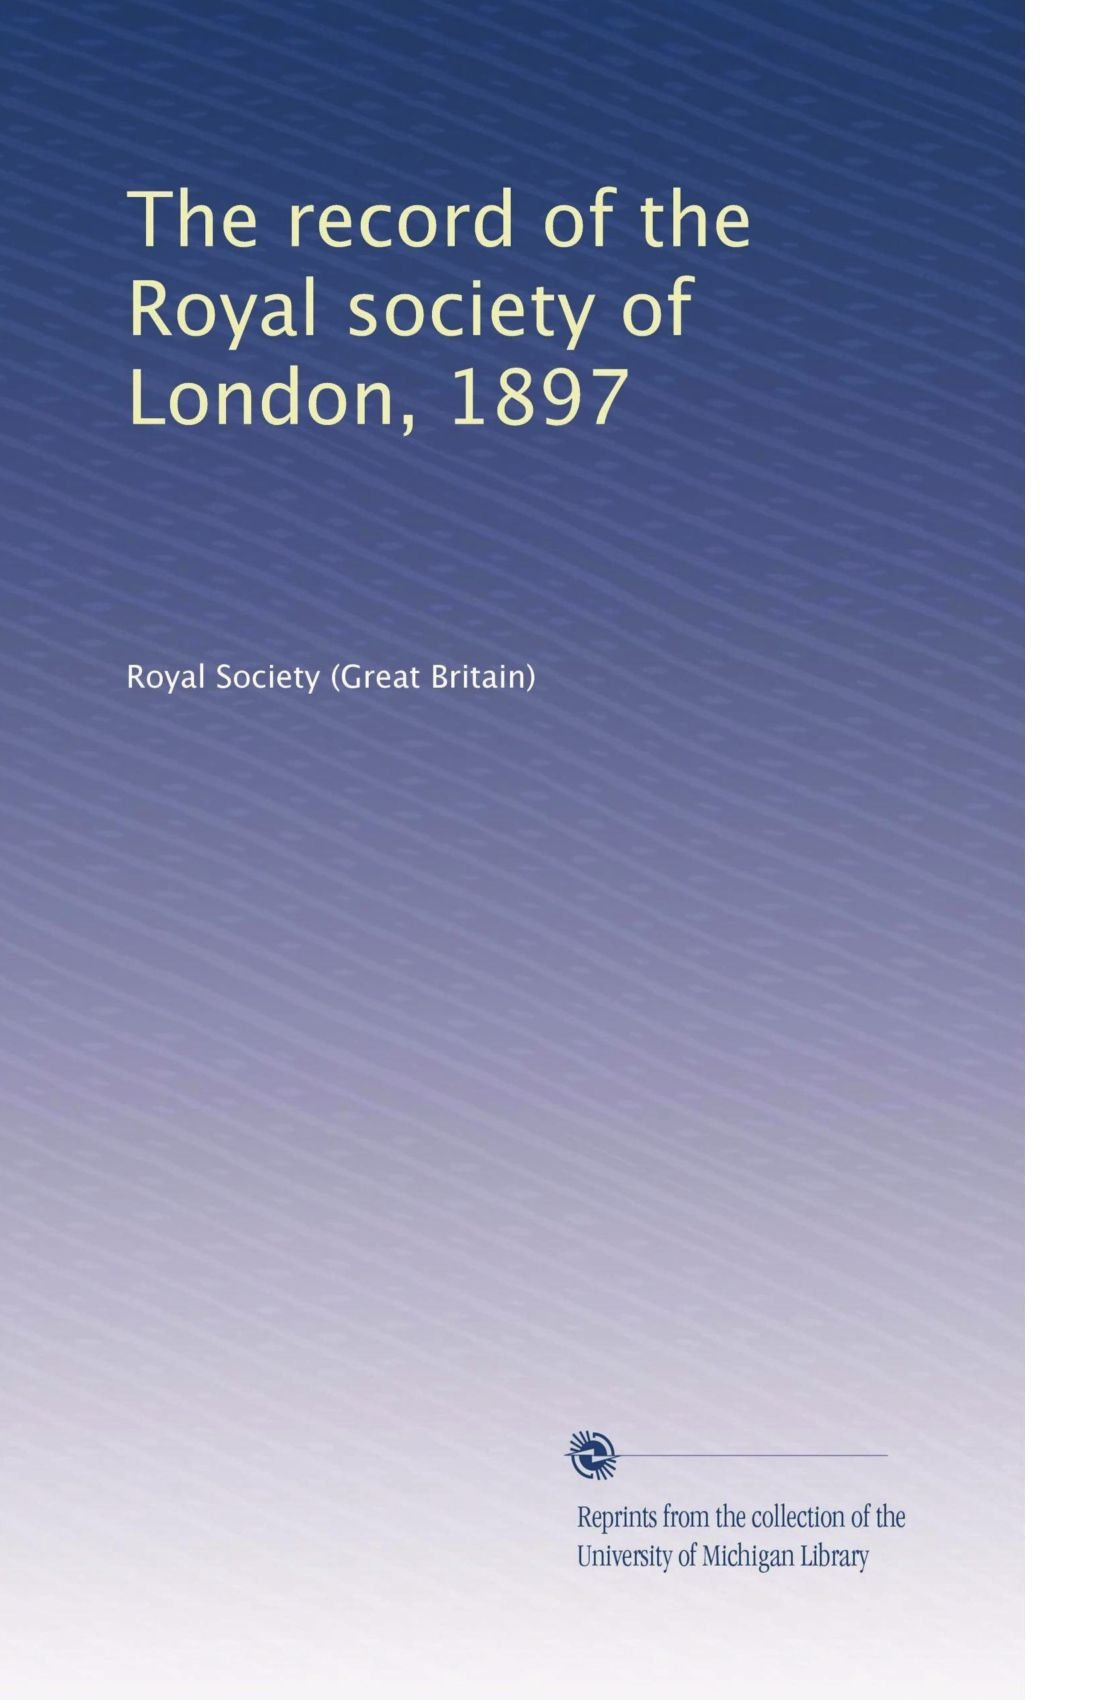 The record of the Royal society of London, 1897 pdf